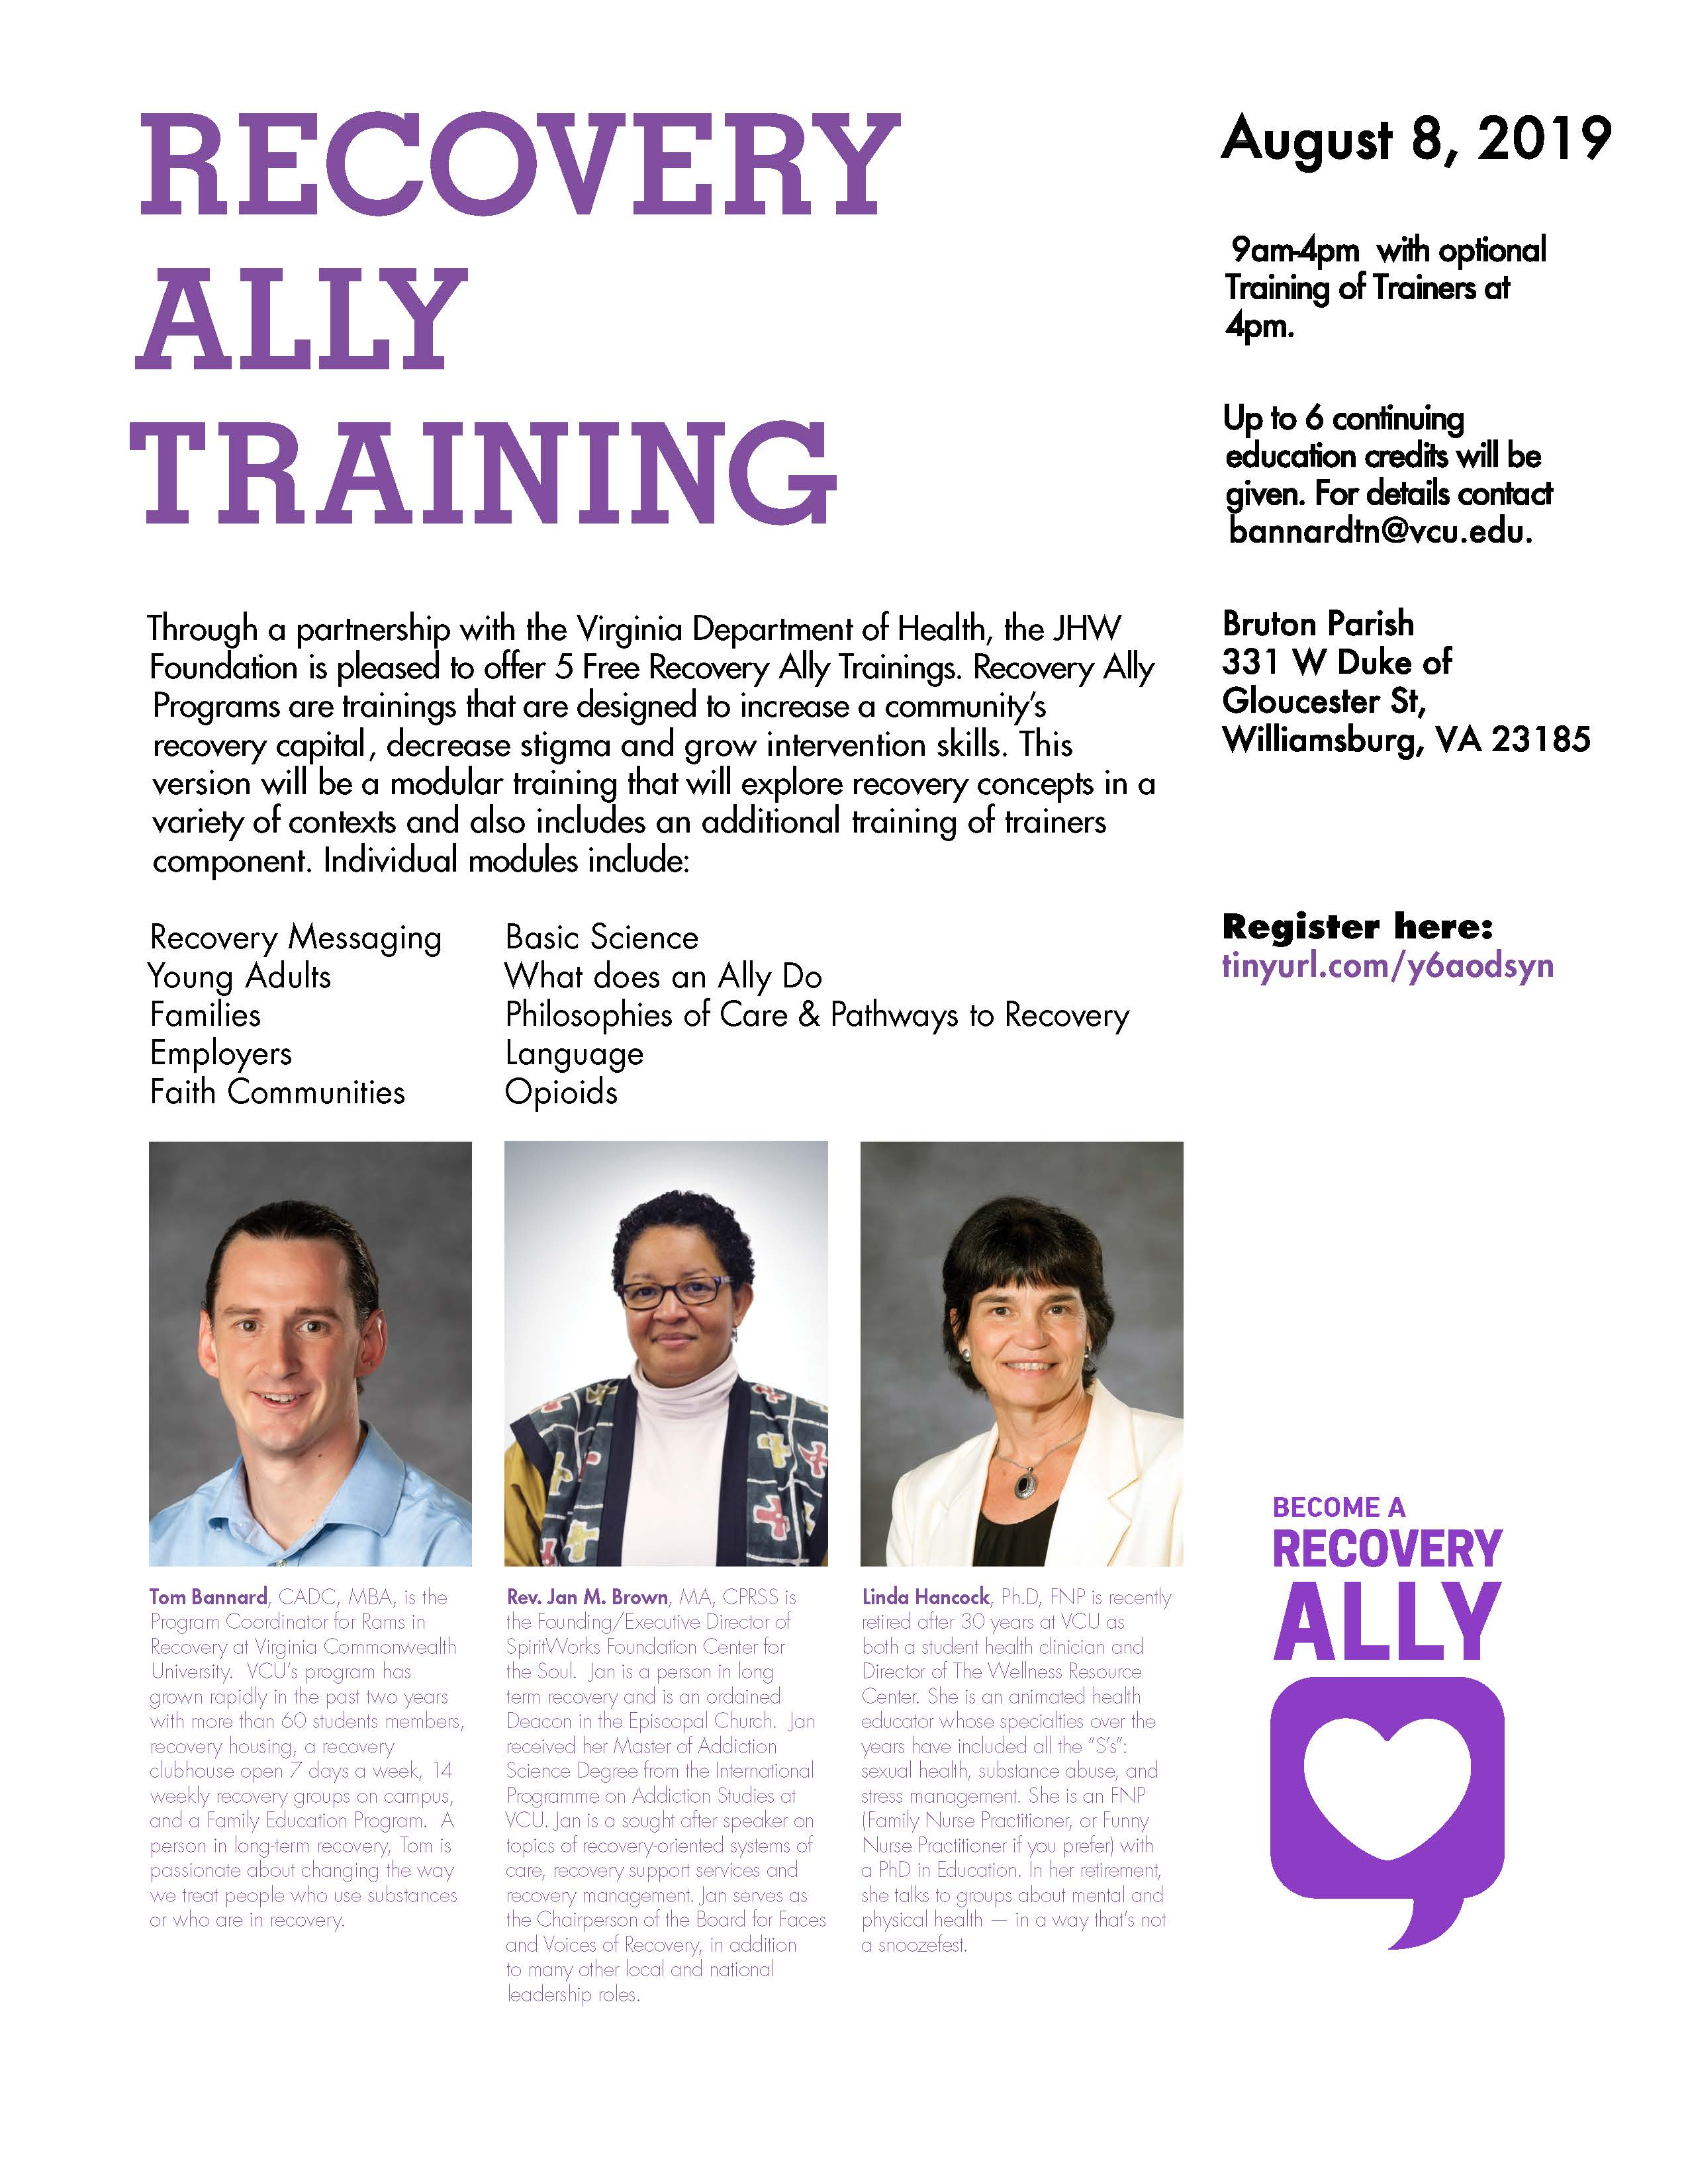 Recovery Ally Training Aug 2019 Williamsburg